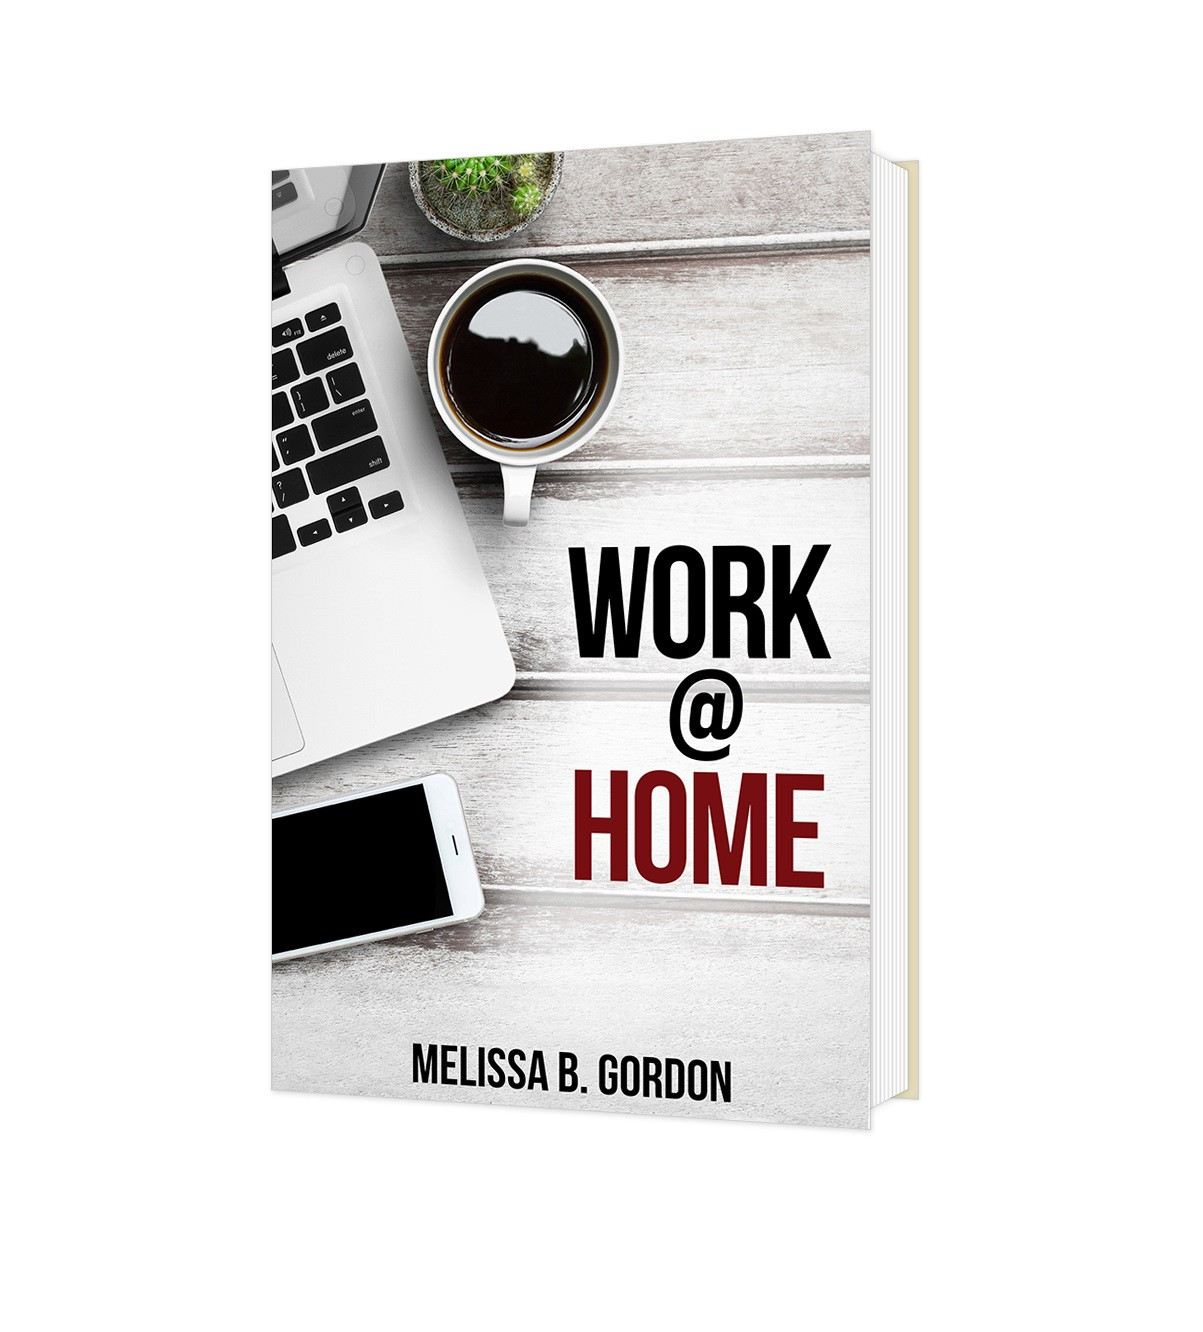 Soon-to-Be Bestselling Book on Remote Work Needs Cover Art!